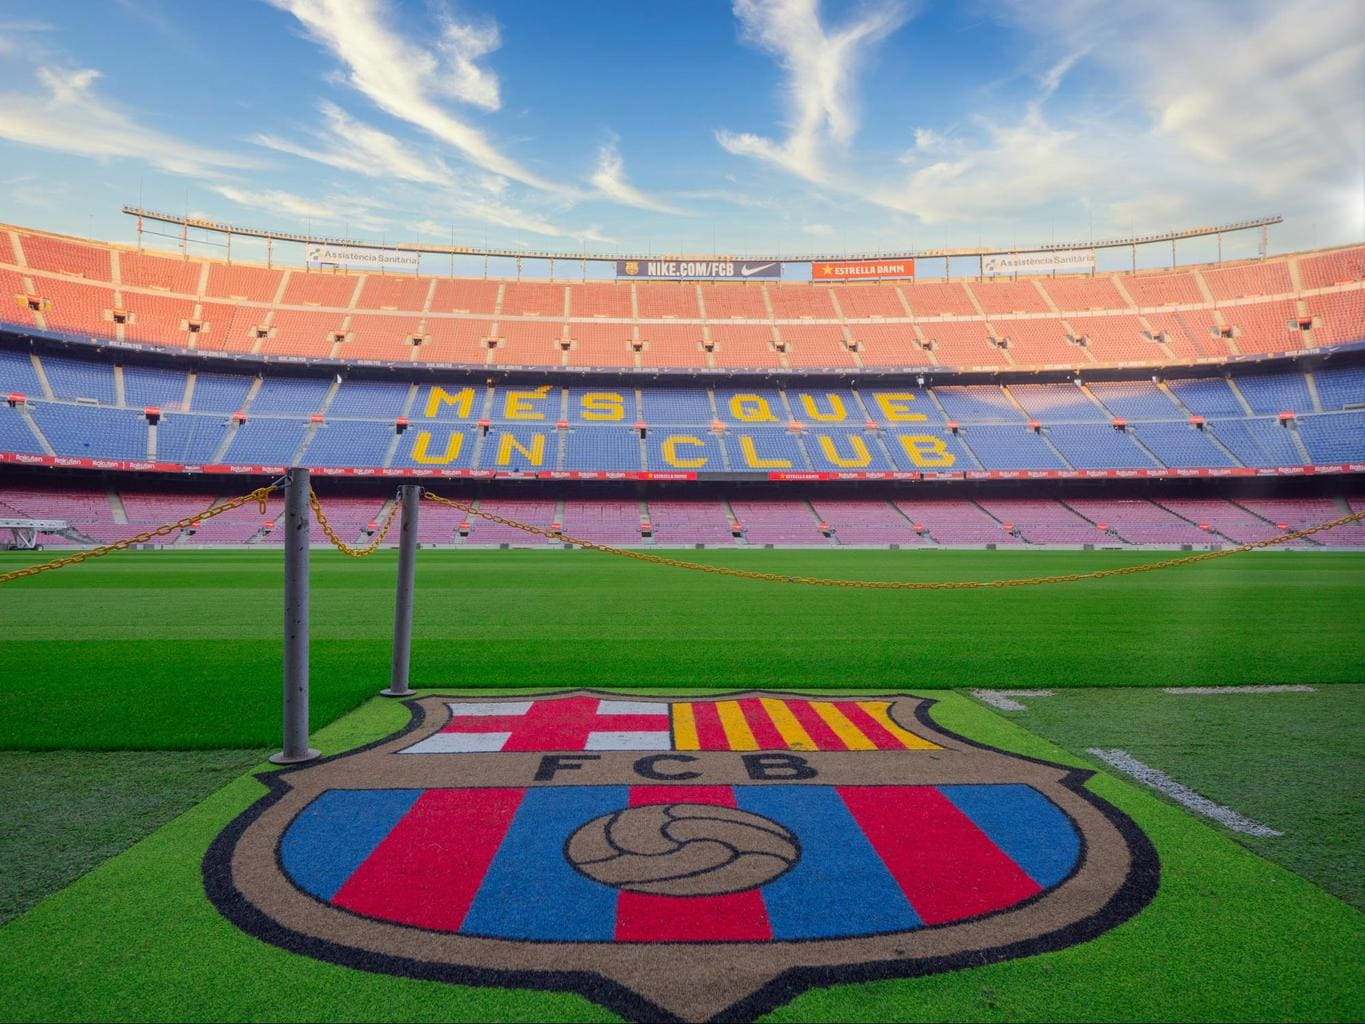 Camp Nou badge and stadium